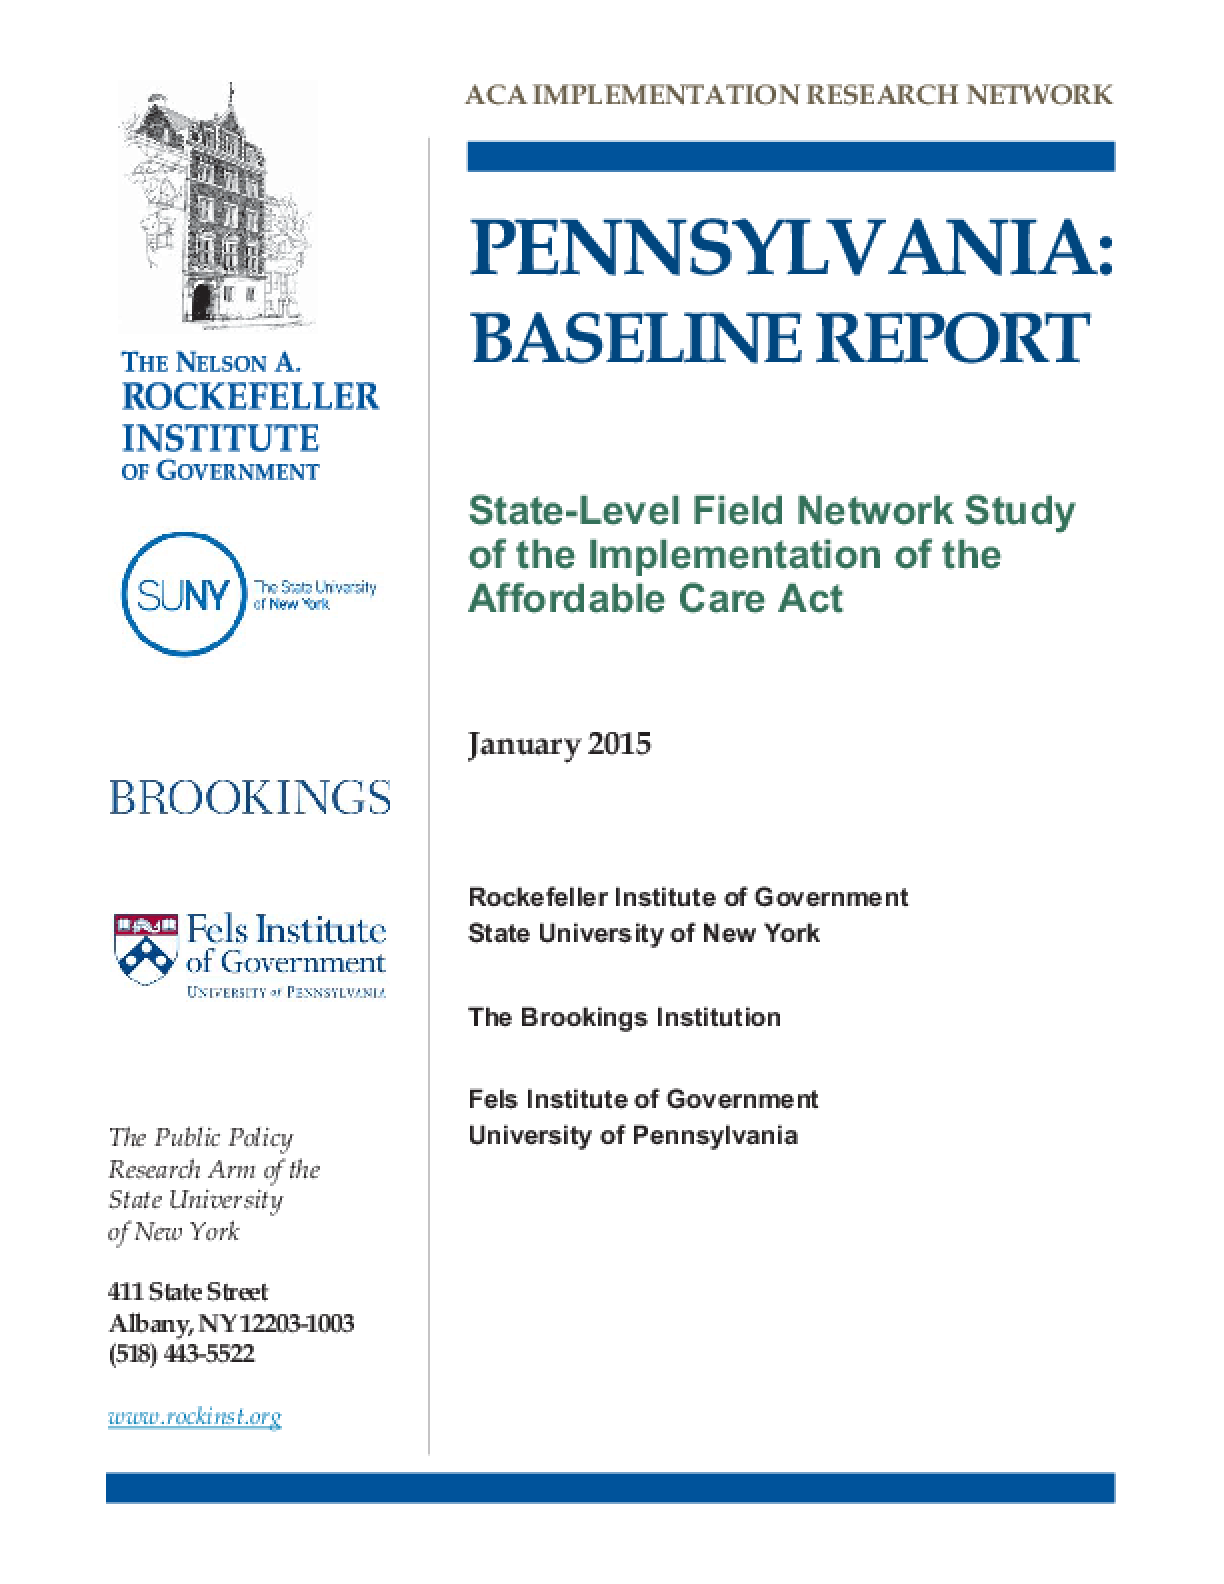 Pennsylvania: Base Line Report - State Level Field Network Study of the Implementation of the Affordable Care Act